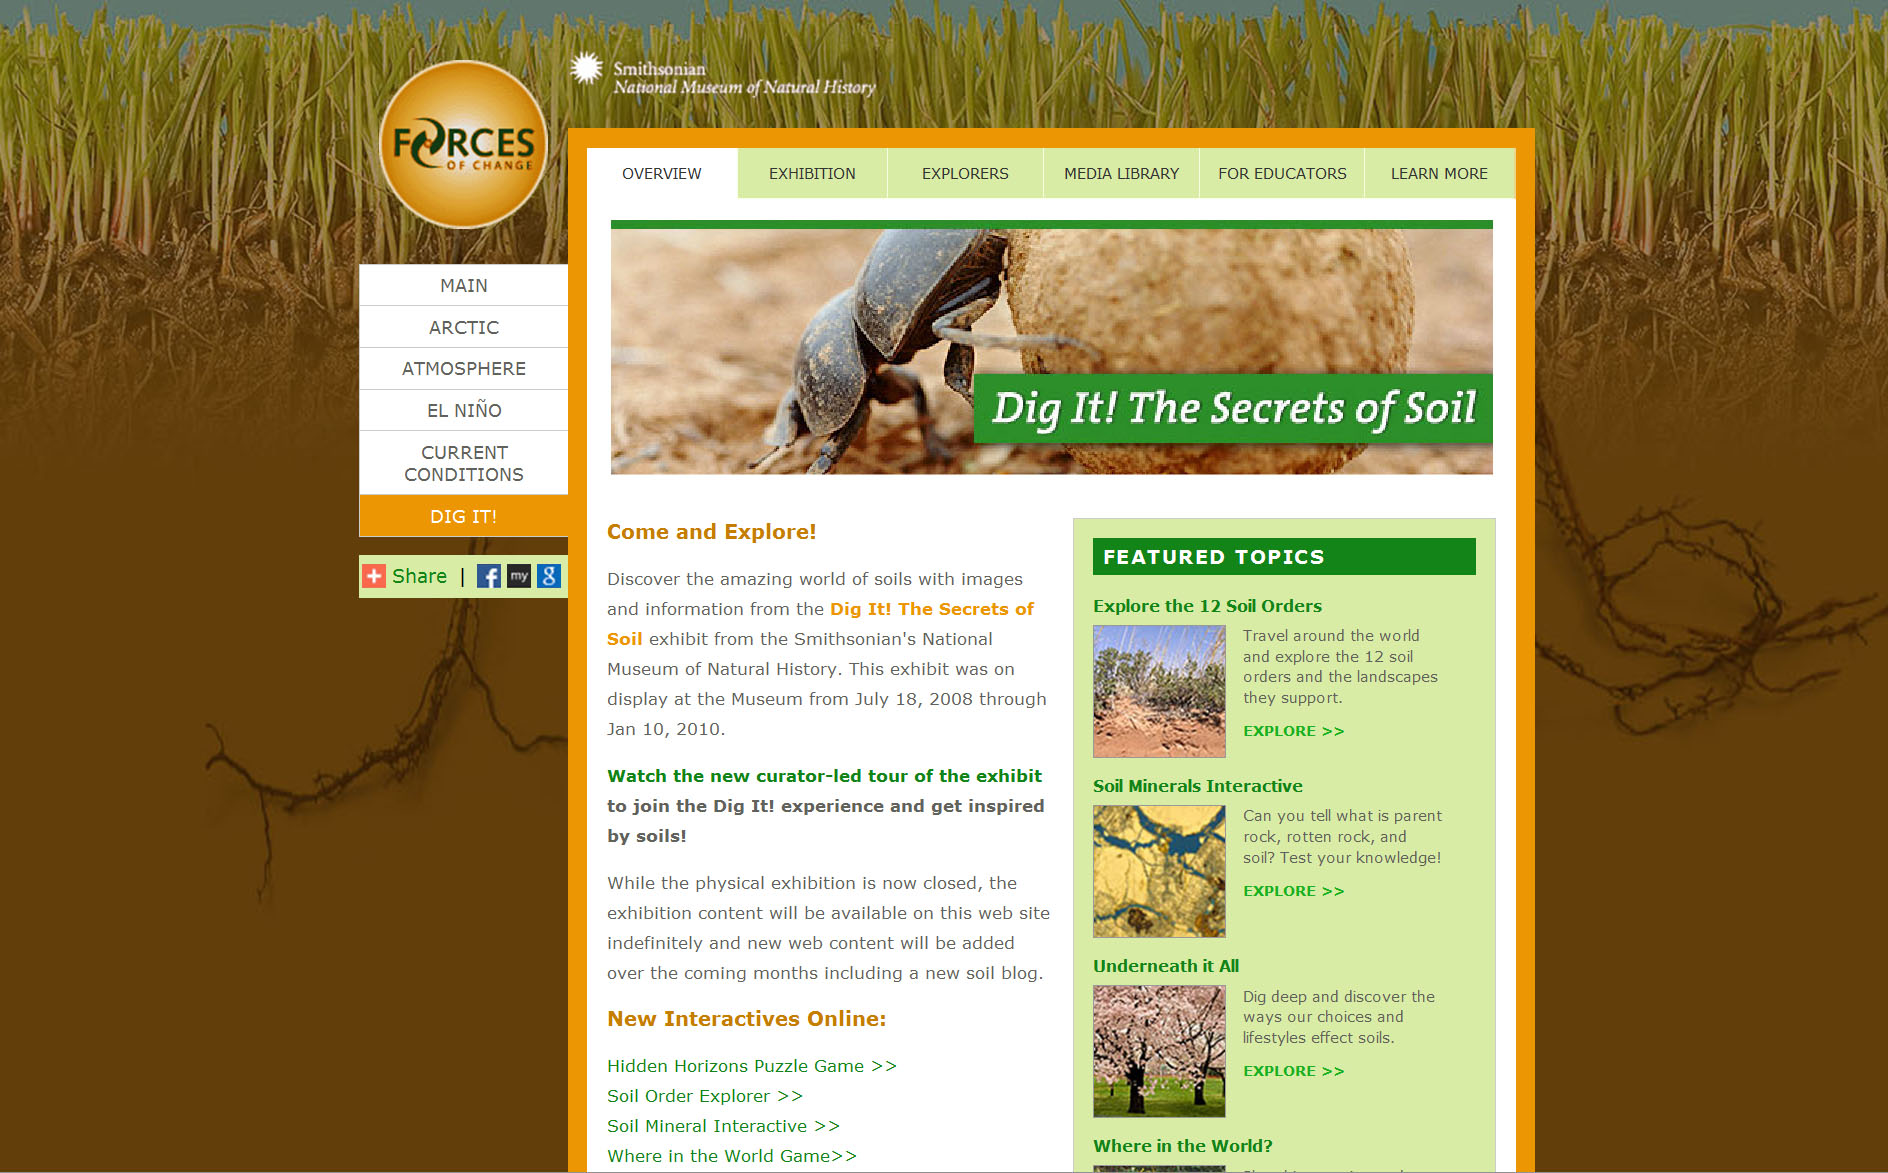 Secrets of Soil